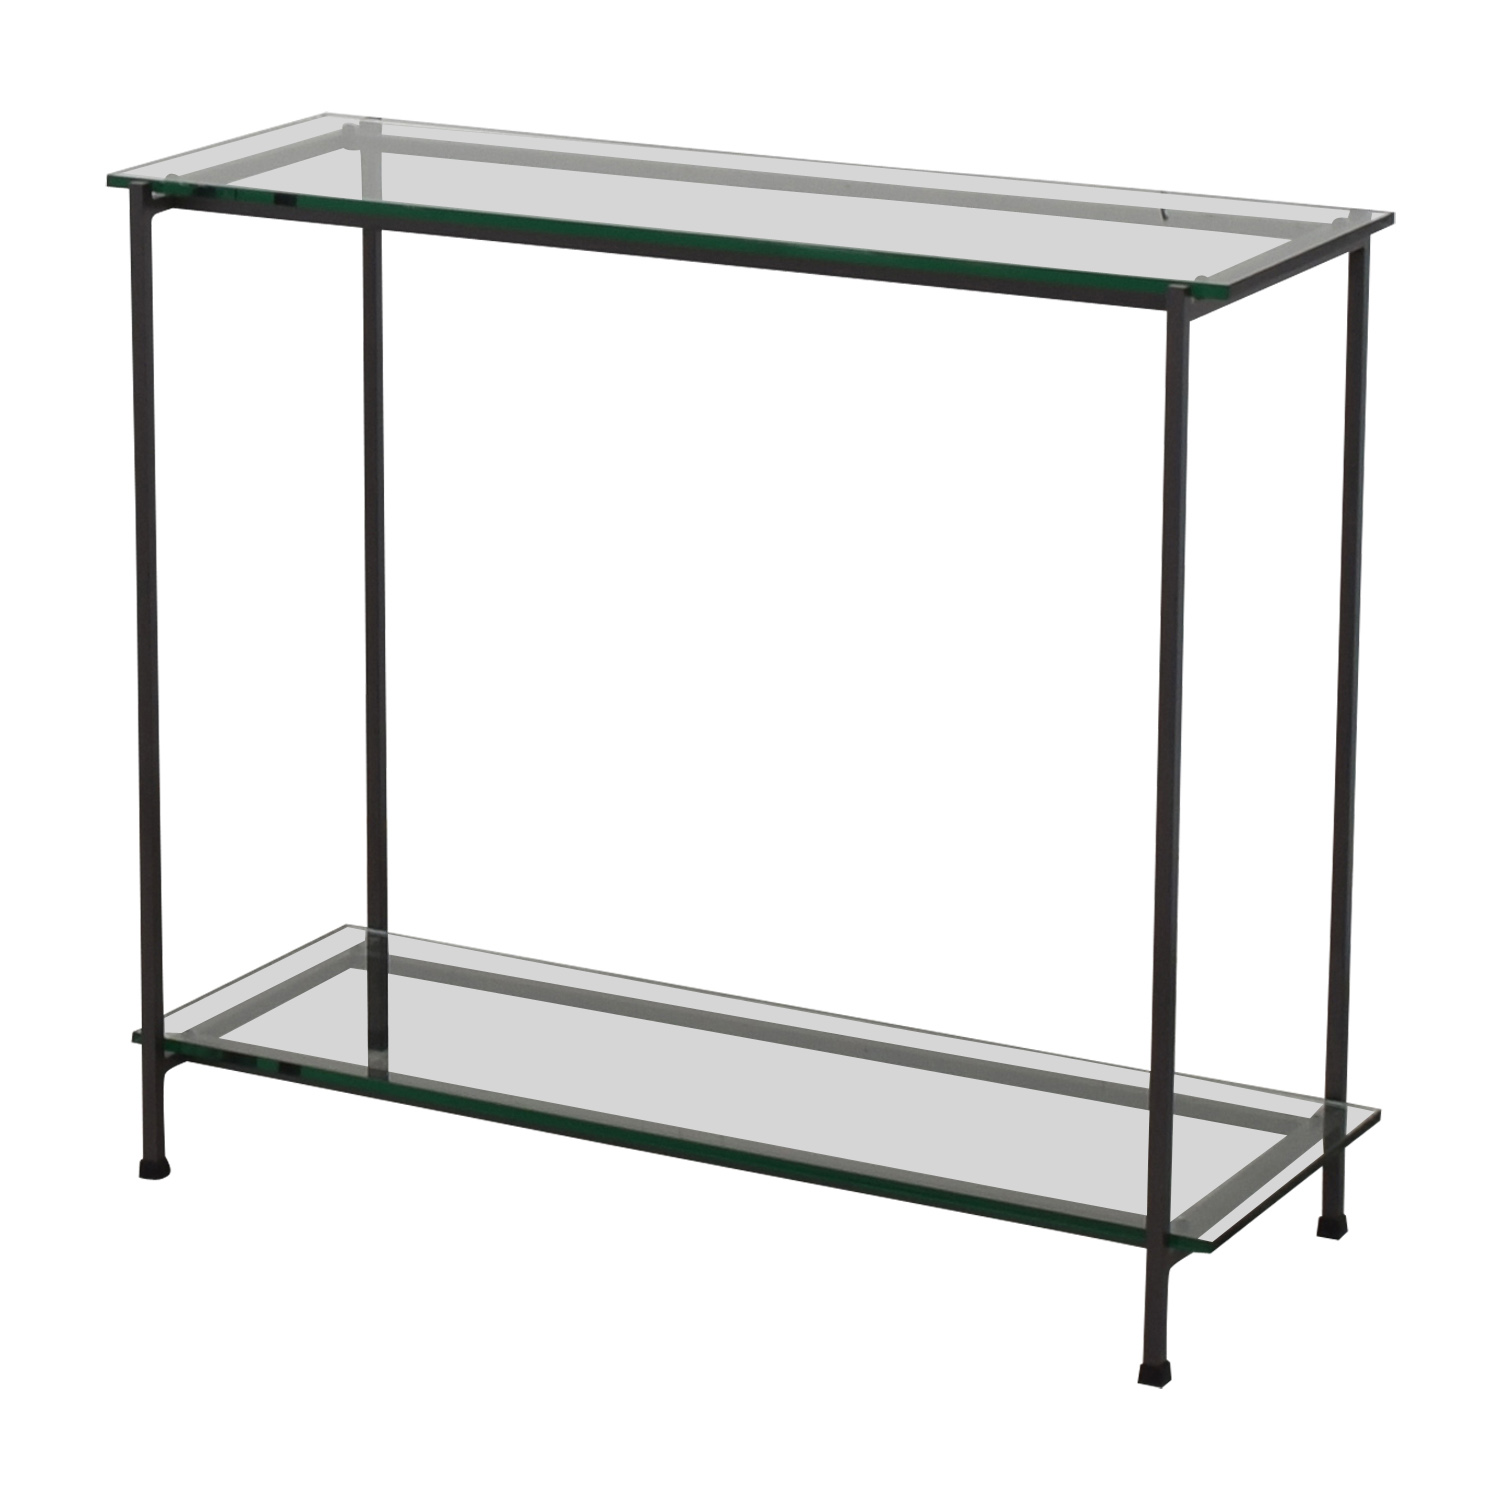 Crate & Barrel Glass Console / Accent Tables